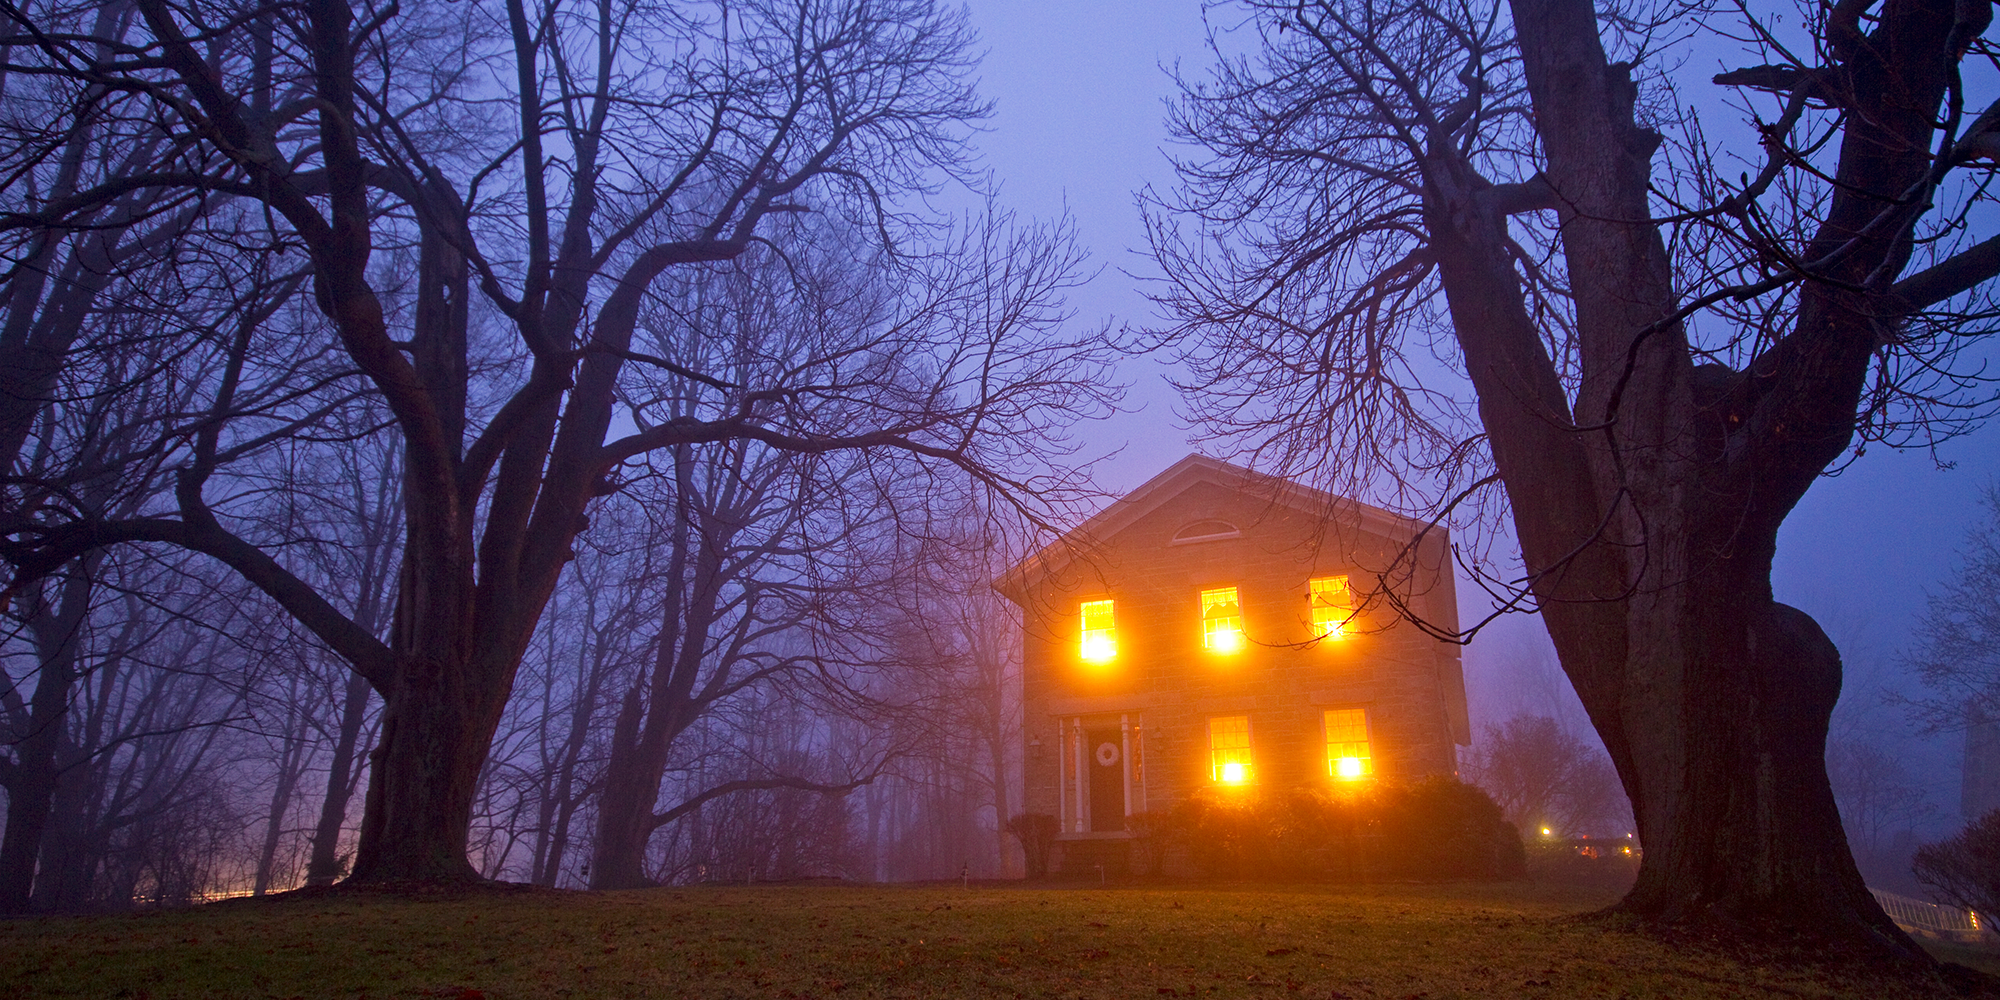 9 Of the Creepiest, Real-Life Haunted House Stories You'll Ever Hear